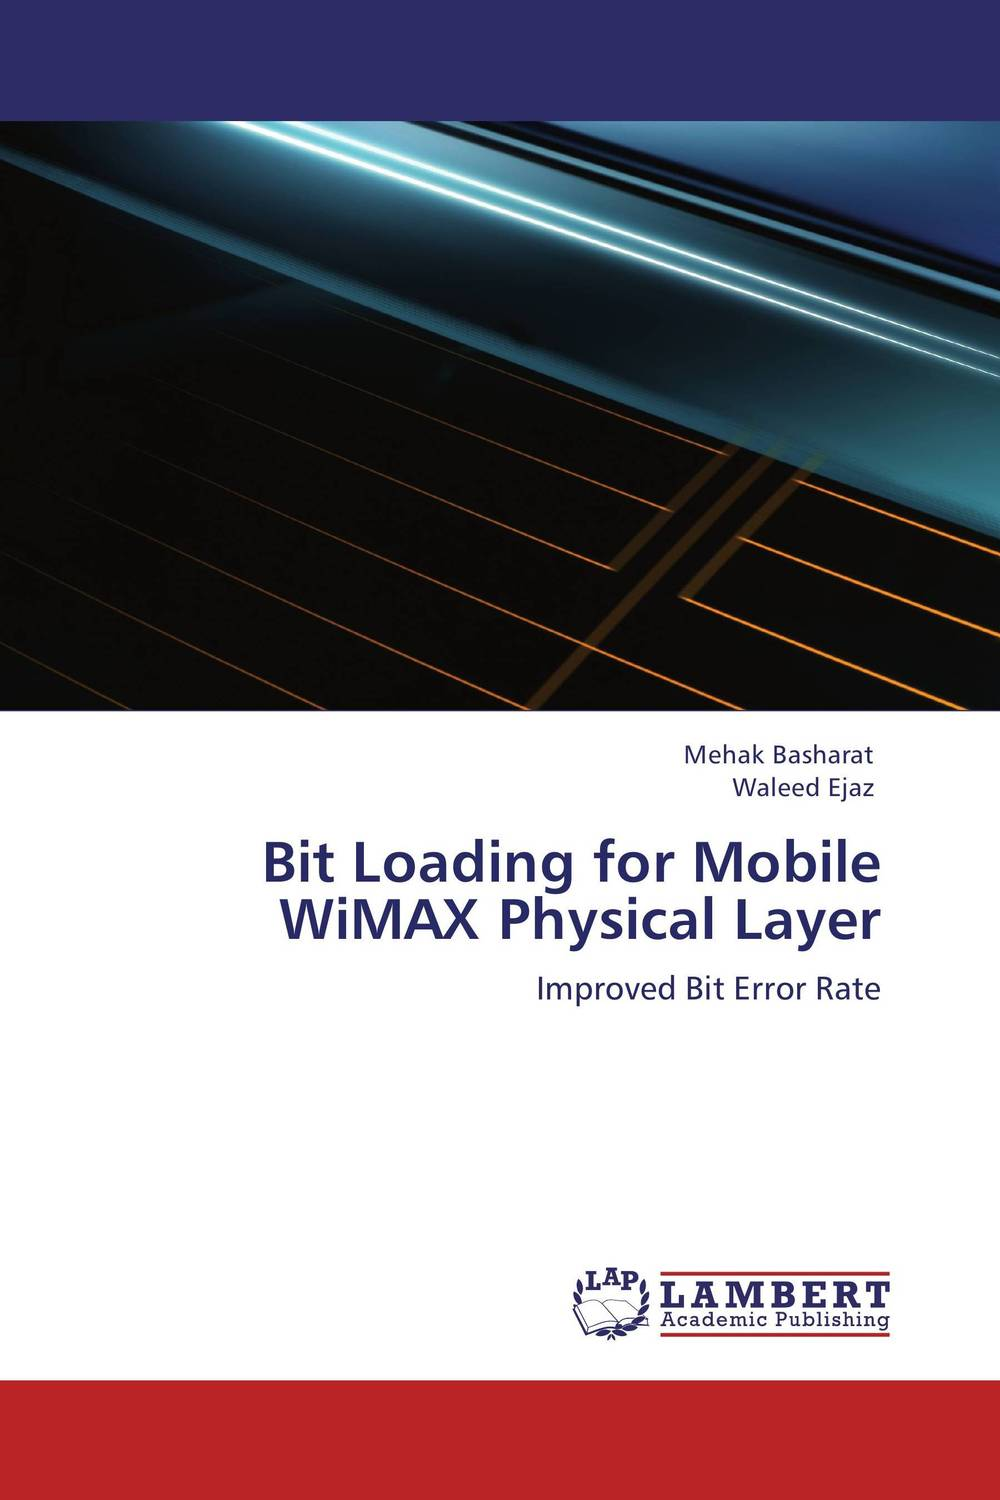 Bit Loading for Mobile WiMAX Physical Layer optimal pll loop filter design for mobile wimax via lmi